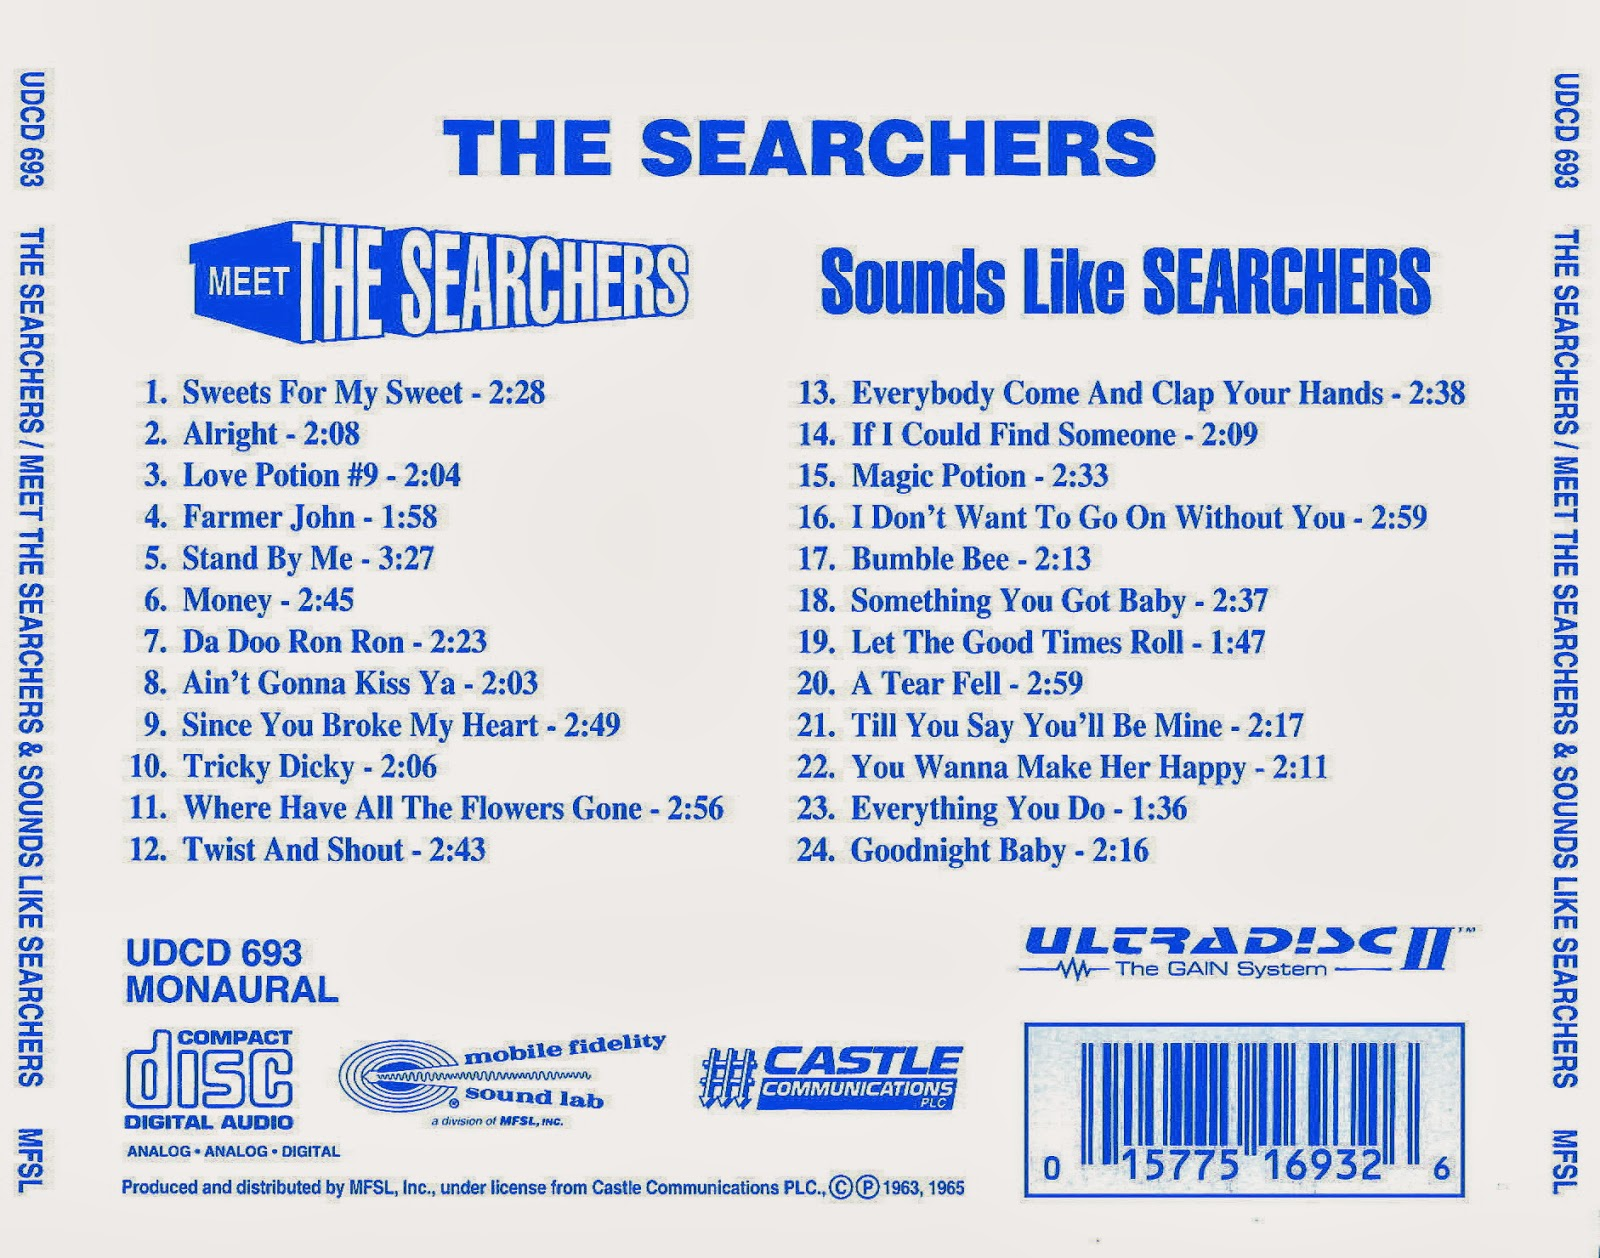 The Searchers Meet The Searchers